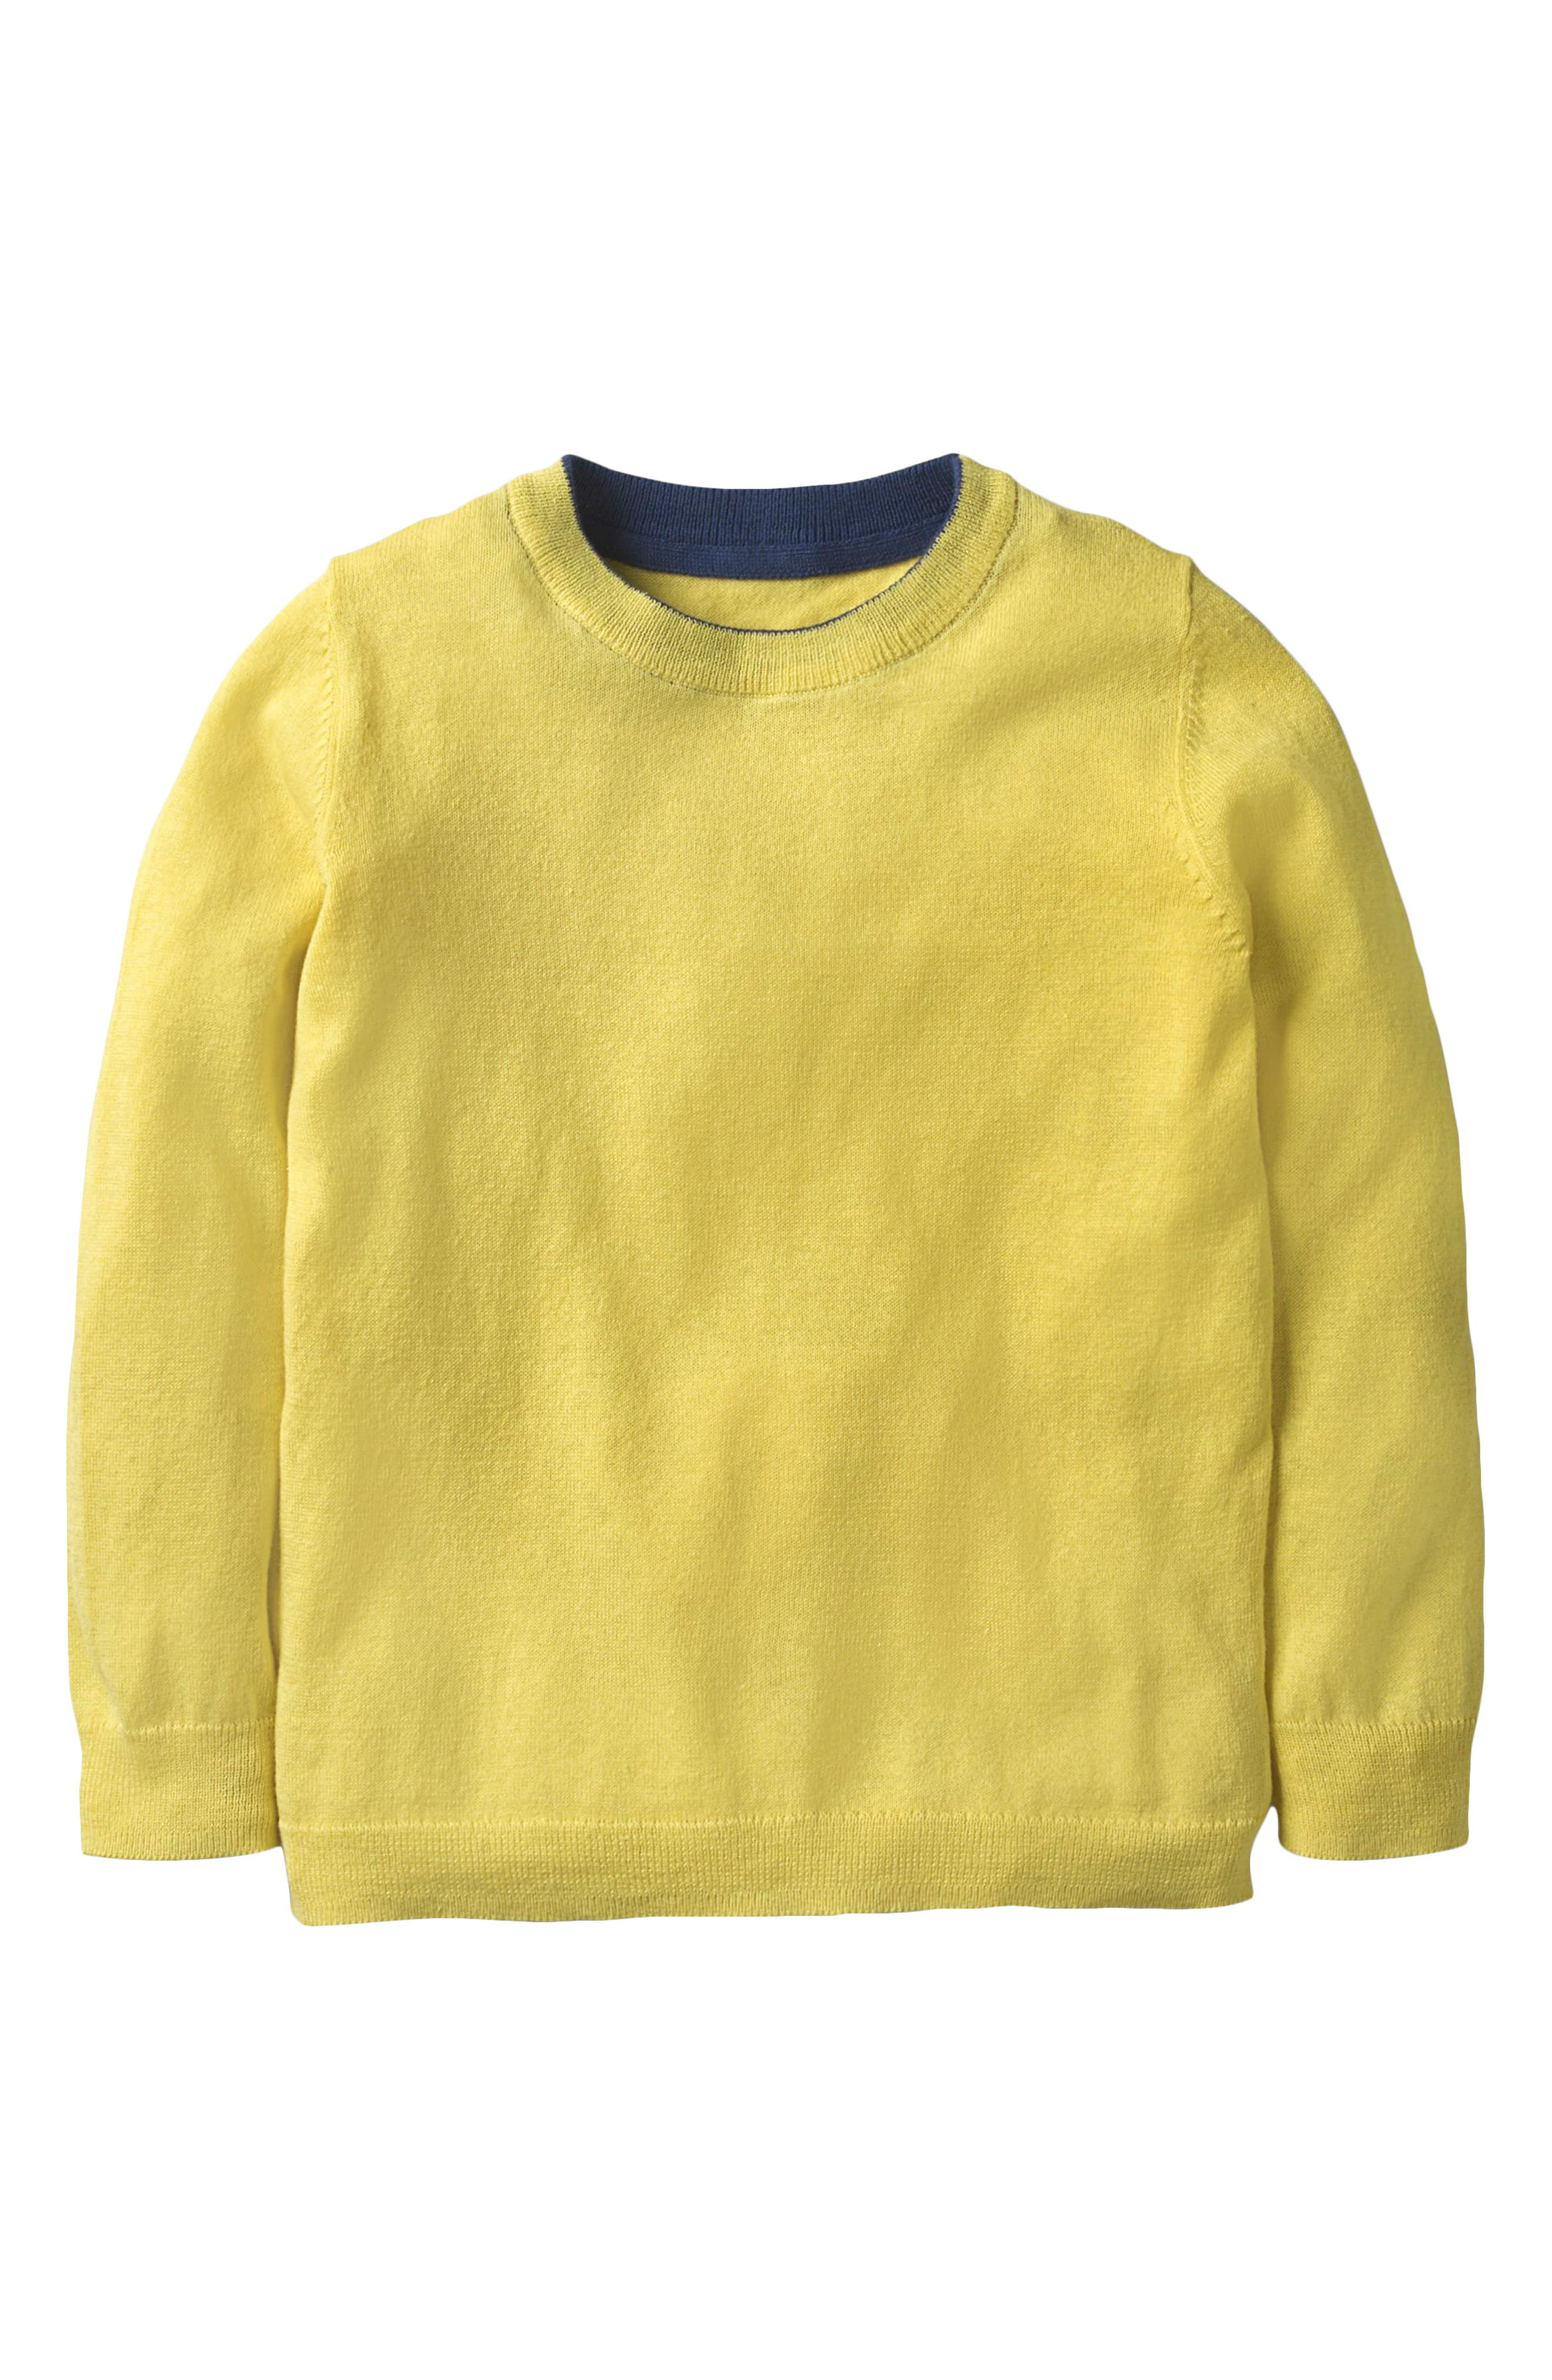 Cotton & Cashmere Sweater,                             Main thumbnail 1, color,                             Sweetcorn Yellow